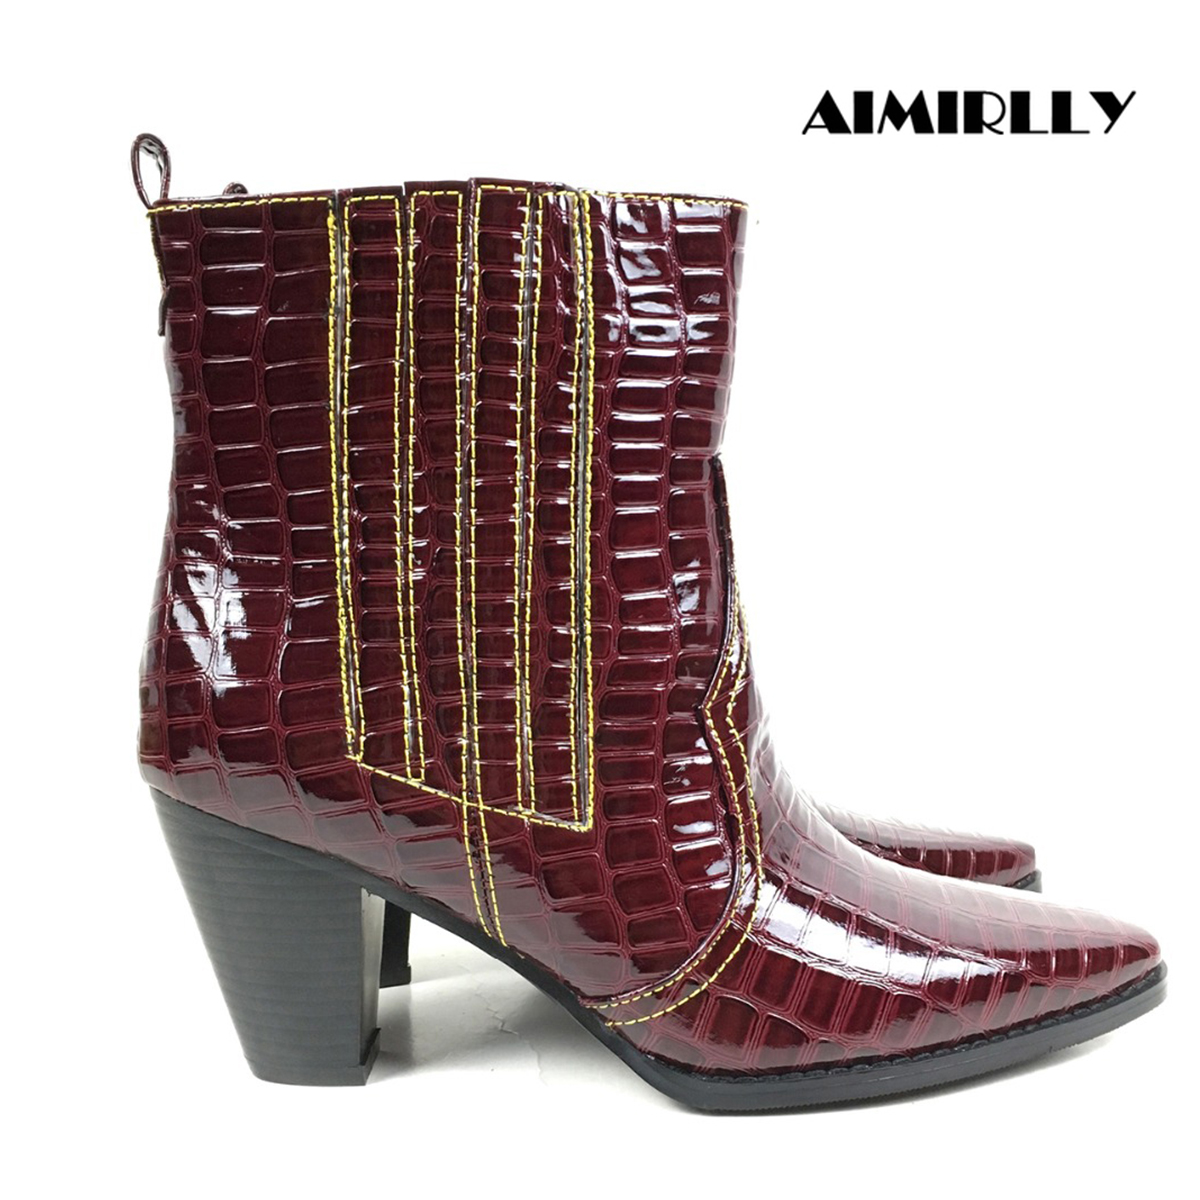 Aimirlly Women Ankle Boots Square toe Block Heel Crocodile Print Cowboy Booties Wine Red Winter Autumn